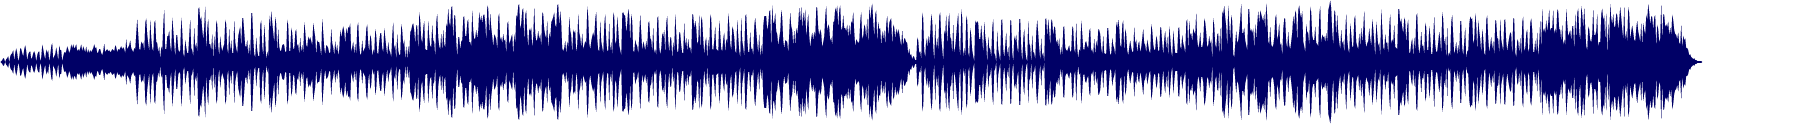 waveform of track #74422